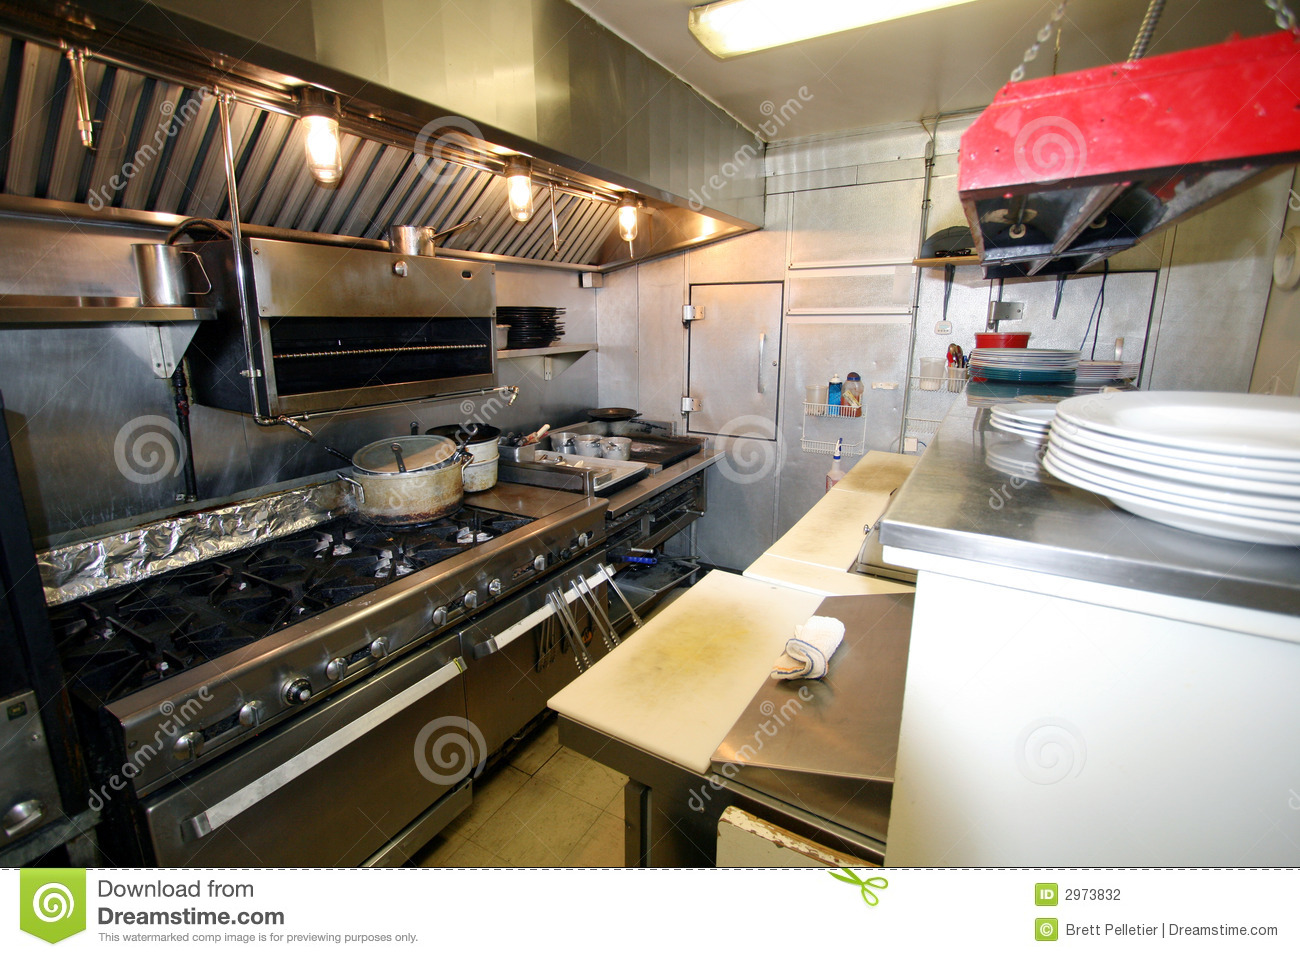 Restaurant Kitchen Photos restaurant kitchen stock photos, images, & pictures - 208,238 images